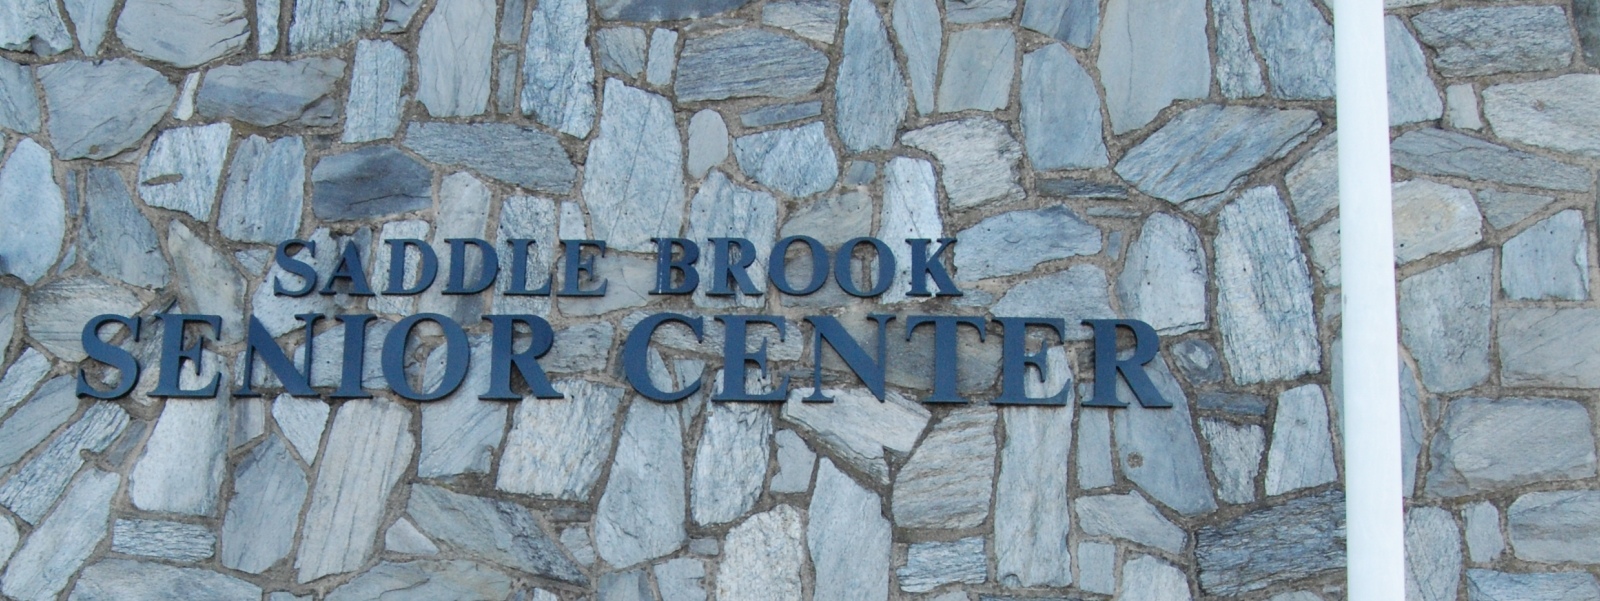 Home - Township of Saddle Brook New Jersey